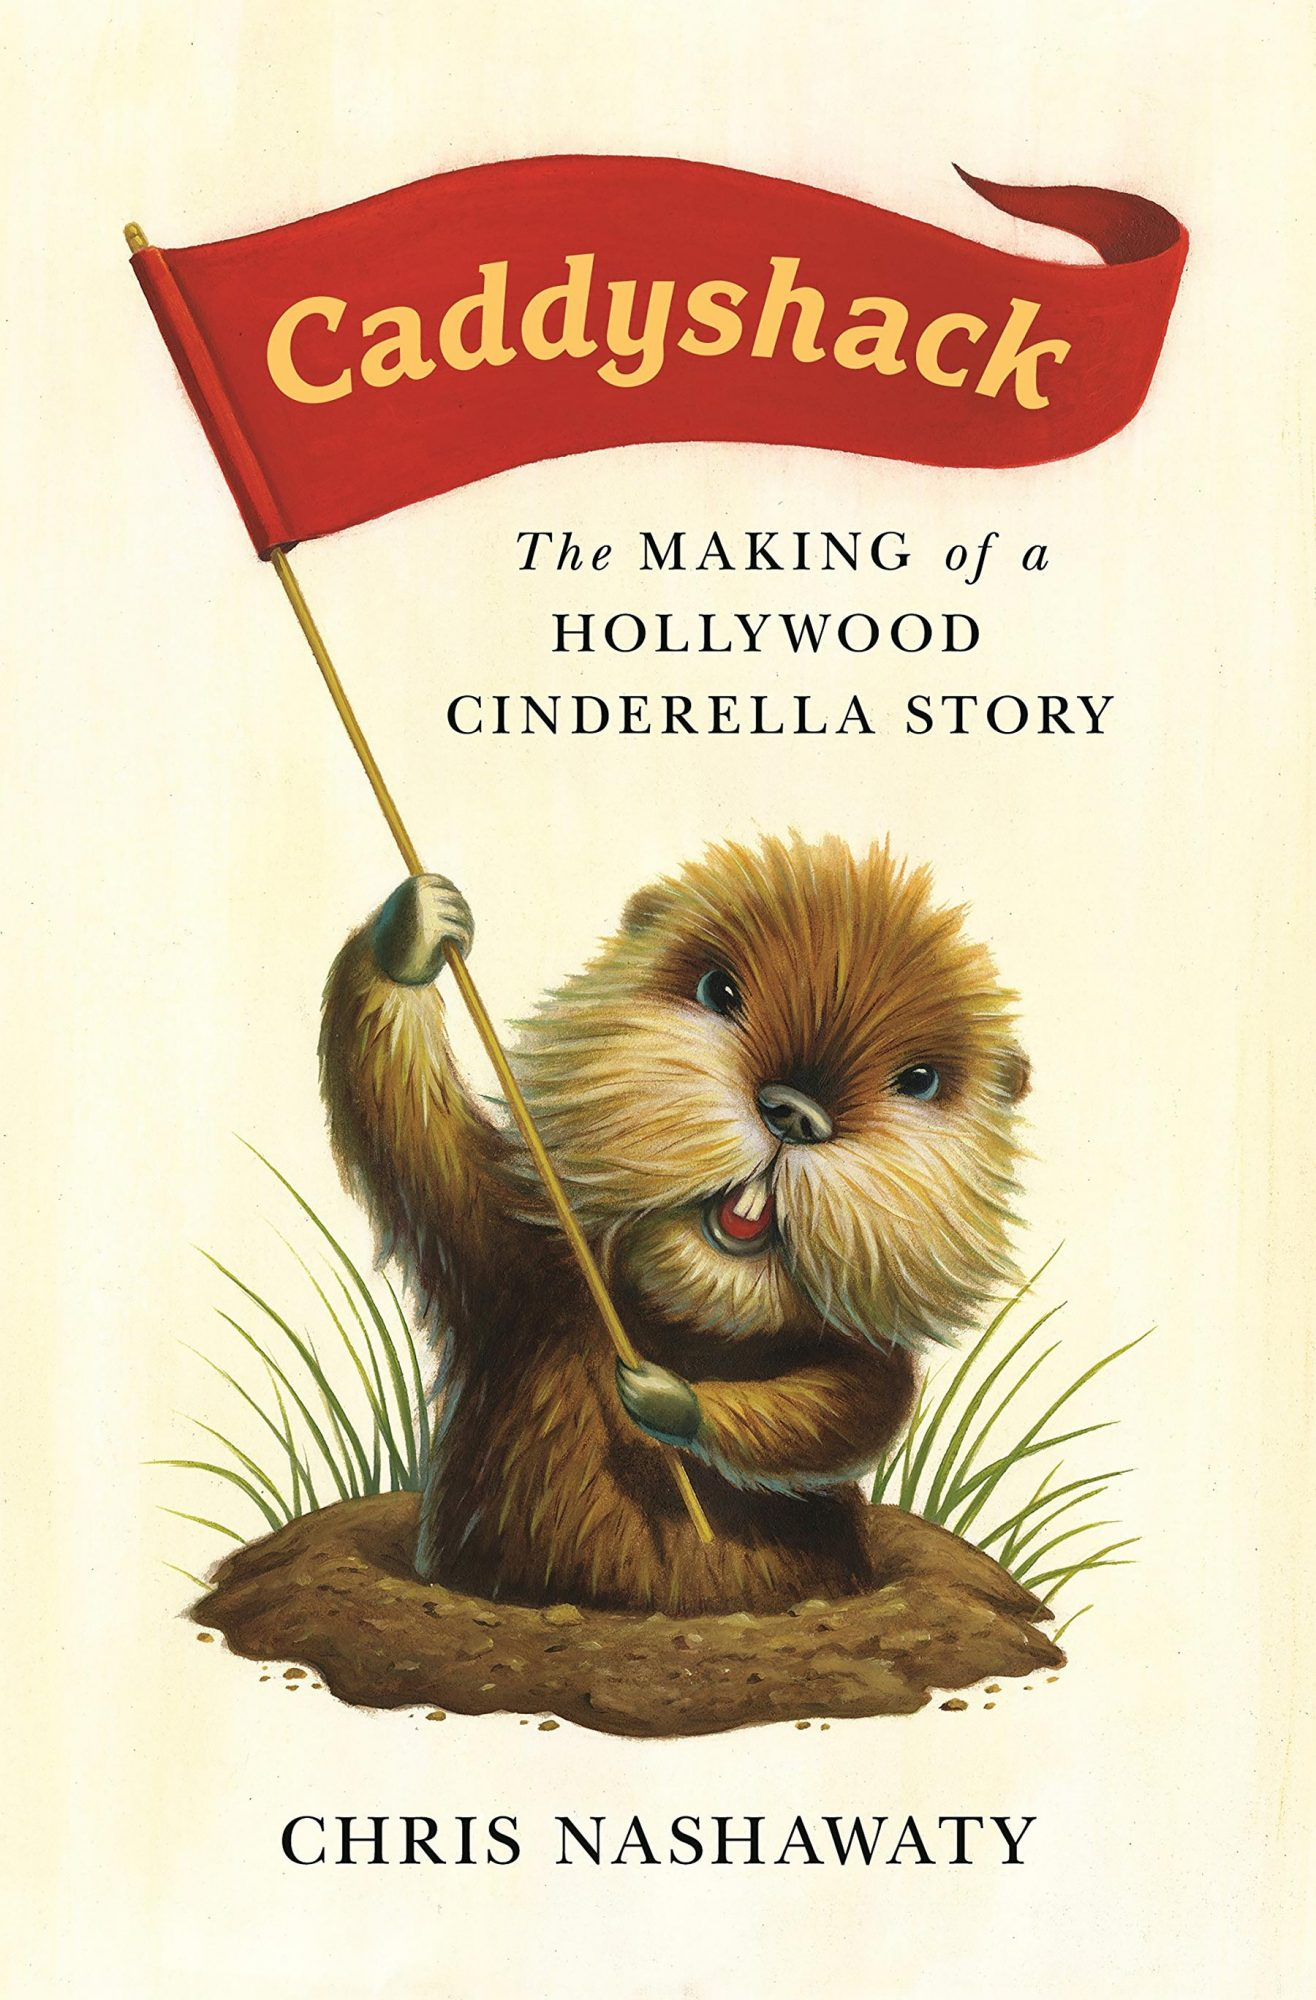 Caddyshack-The-Making-of-a-Hollywood-Cinderella-Story